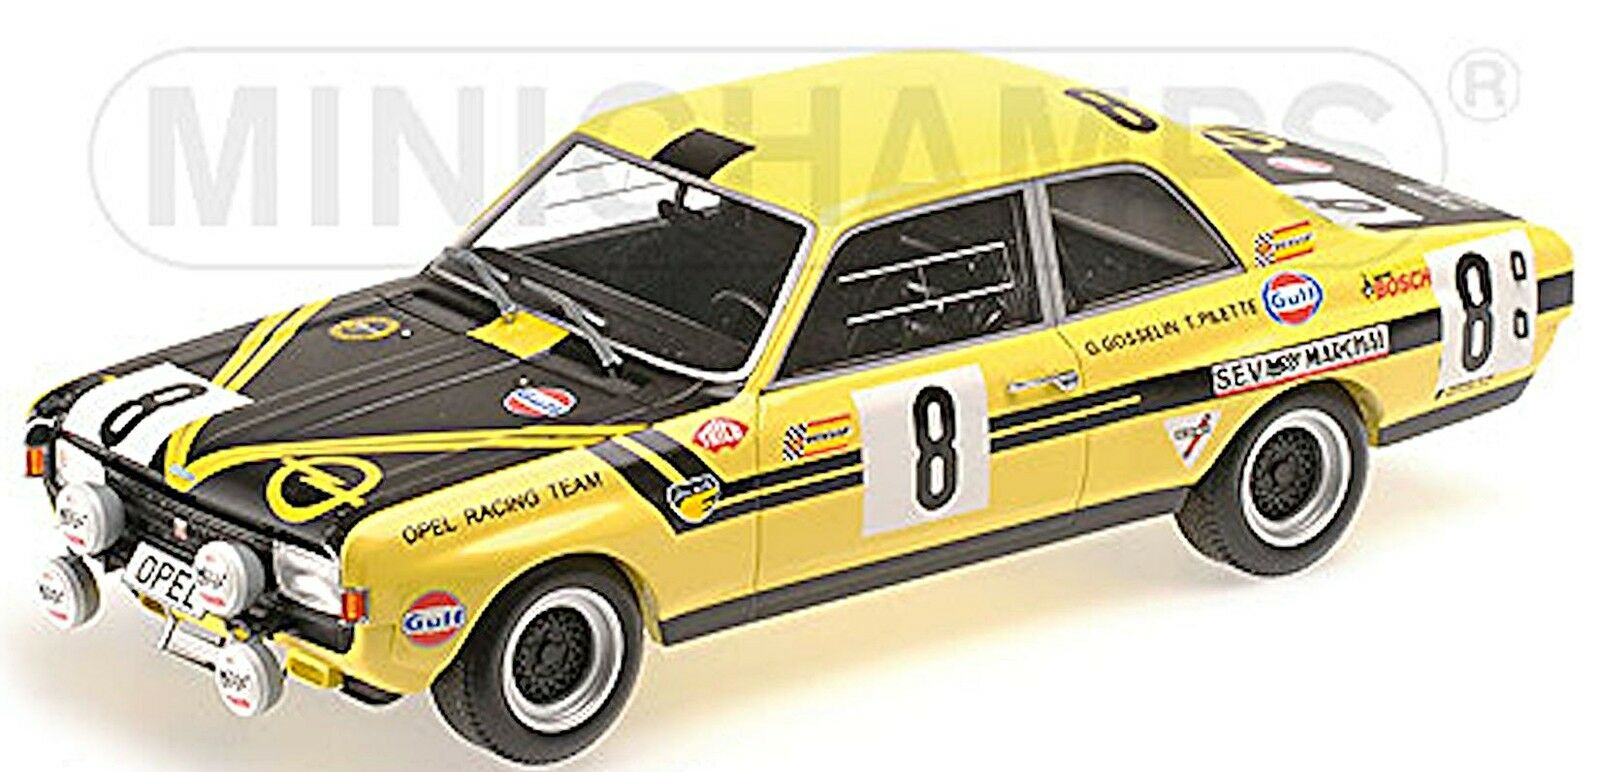 Opel Commodore a cantero 24h spa 1970  8 Pilette Gosselin 1 18 Minichamp